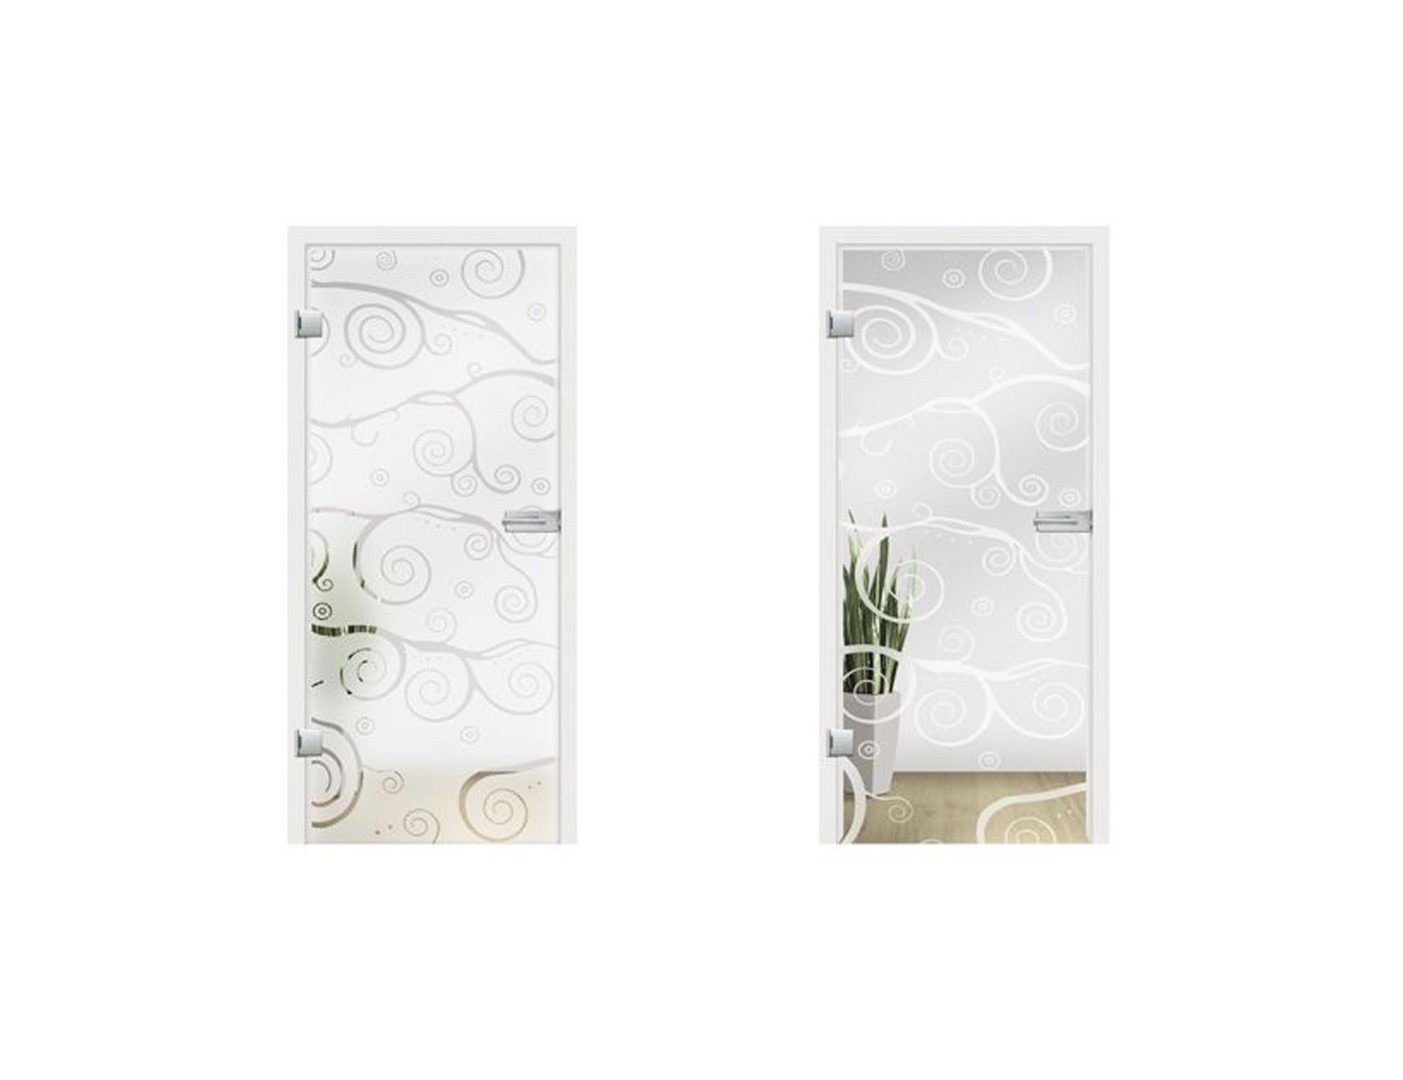 Vino Glass Door Design - Interior Glass Doors